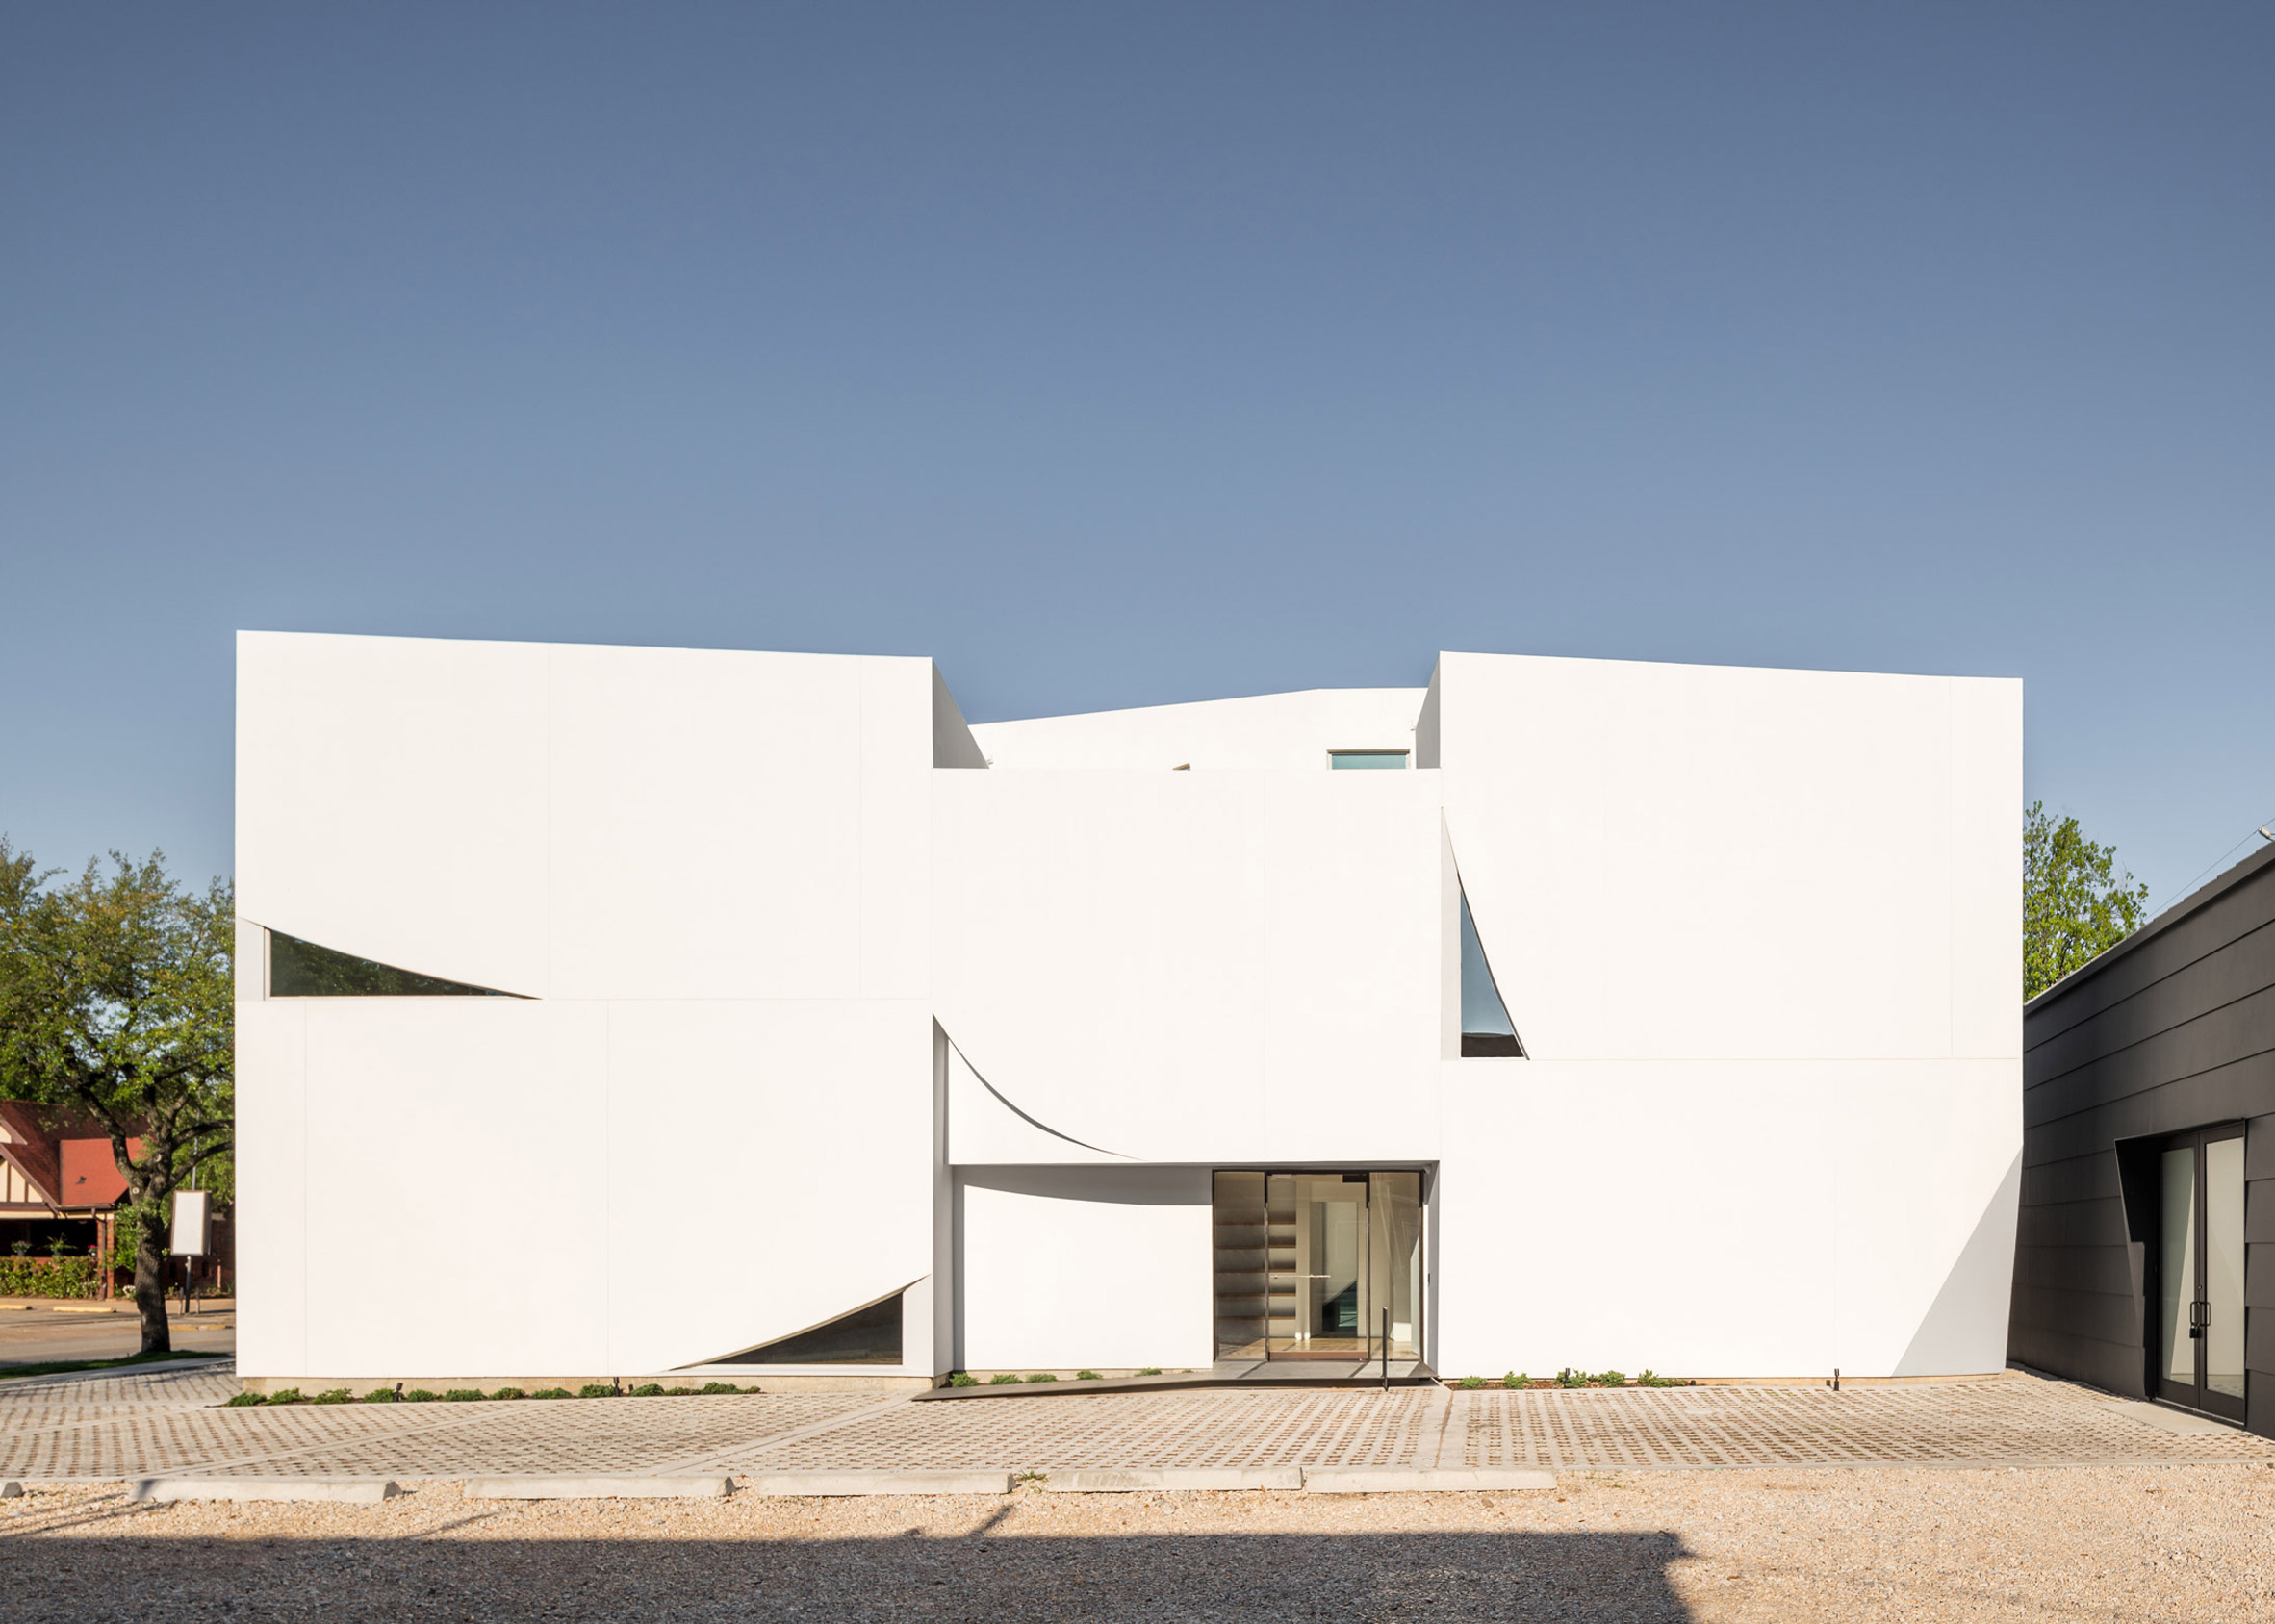 Transart Foundation for Art and Anthropology by Schaum/Shieh, Dezeen's top museums and galleries